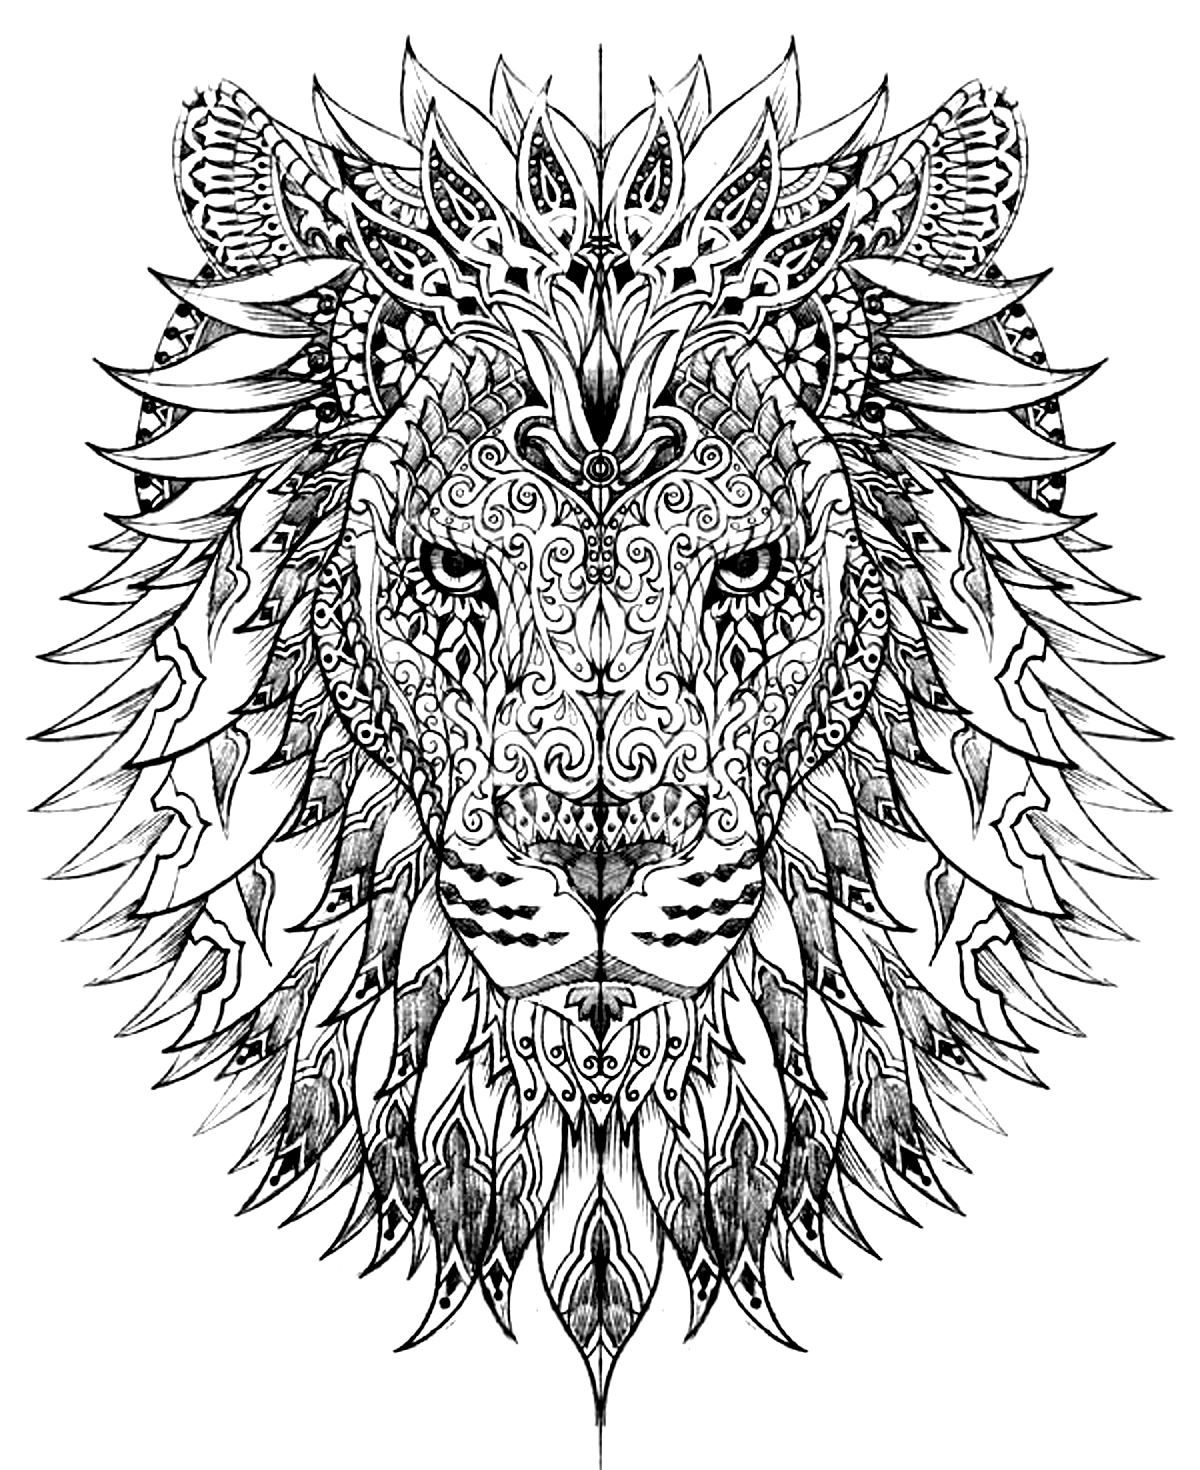 Free coloring page «coloring-adult-difficult-lion-head ...Lion Head Coloring Pages For Adults